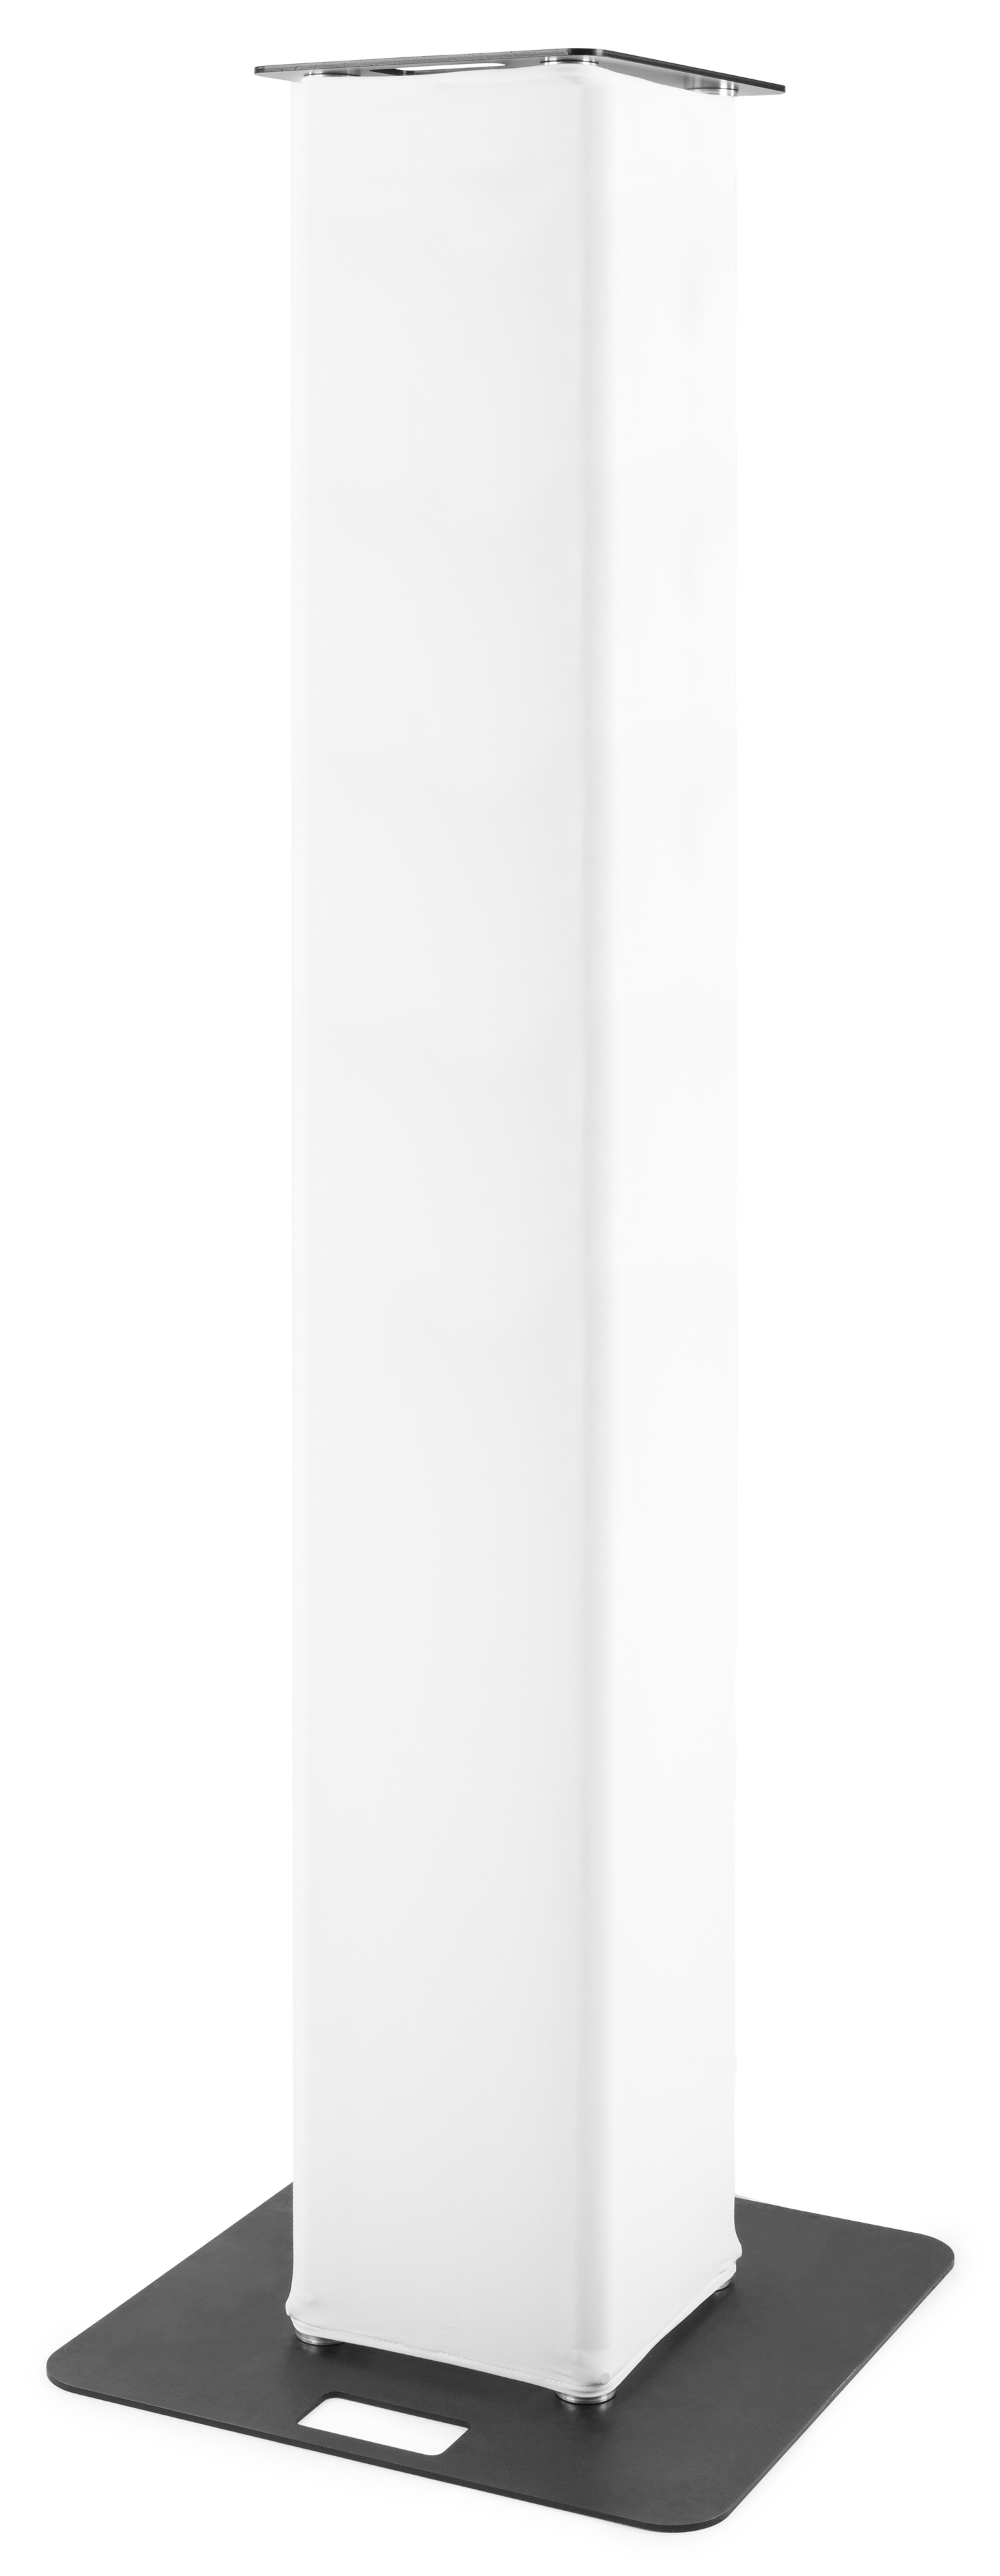 BeamZ Professional P30 Tower 2 meter with white lycra